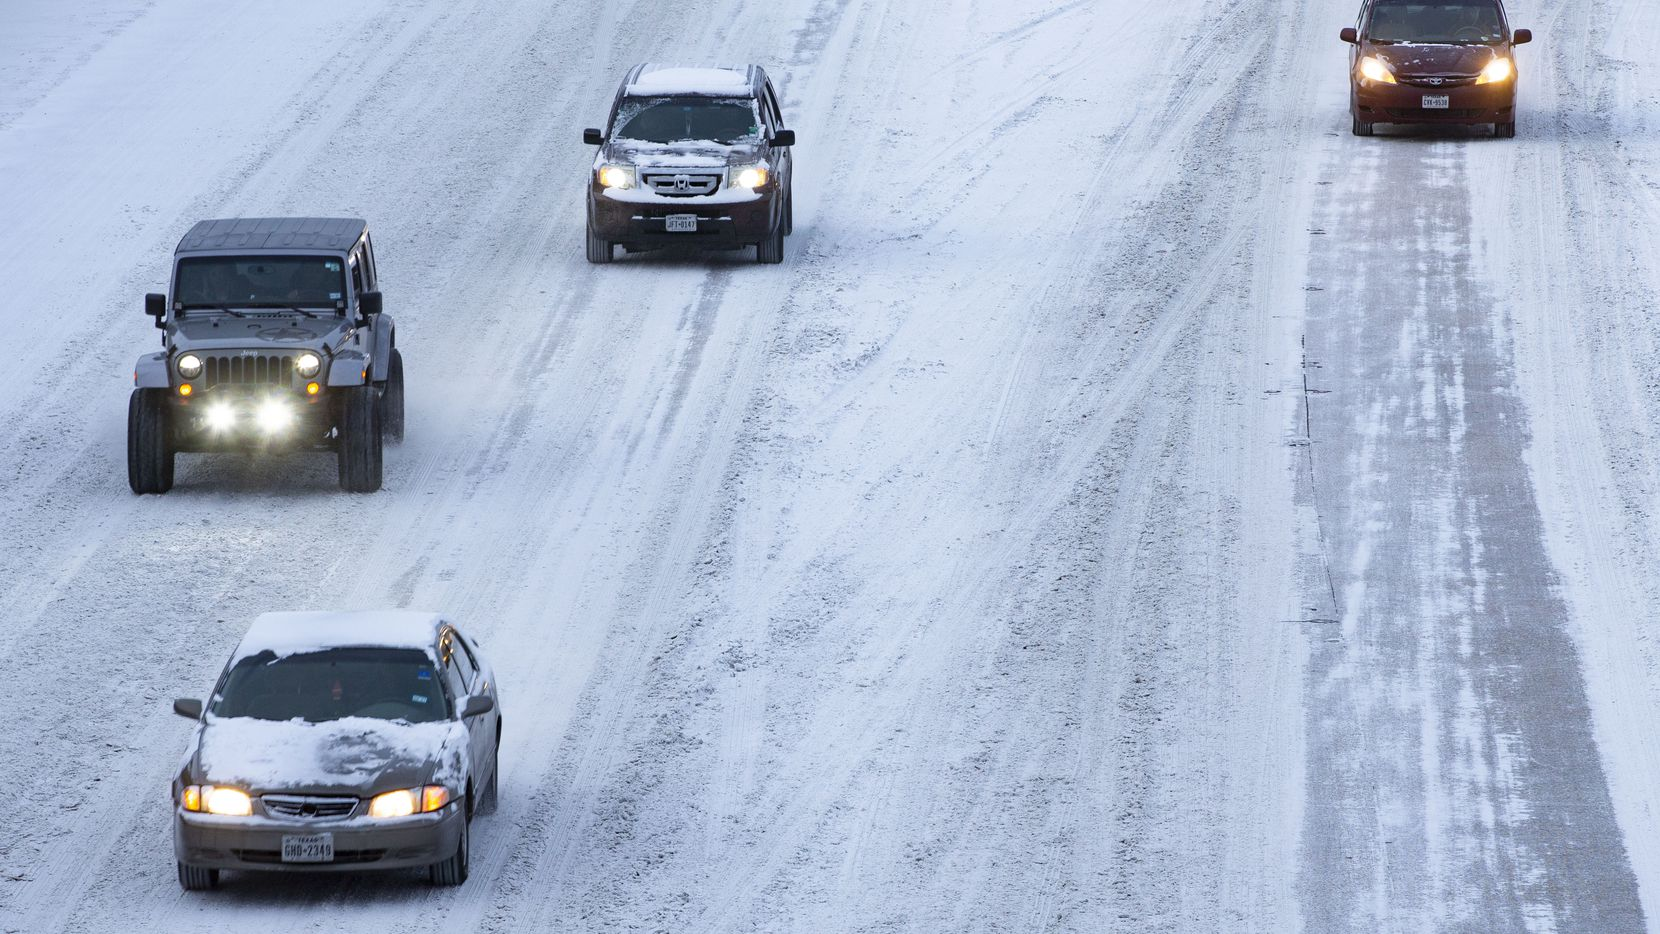 Snow covers cars and the road on US 75 heading out of Downtown Dallas on Monday morning.